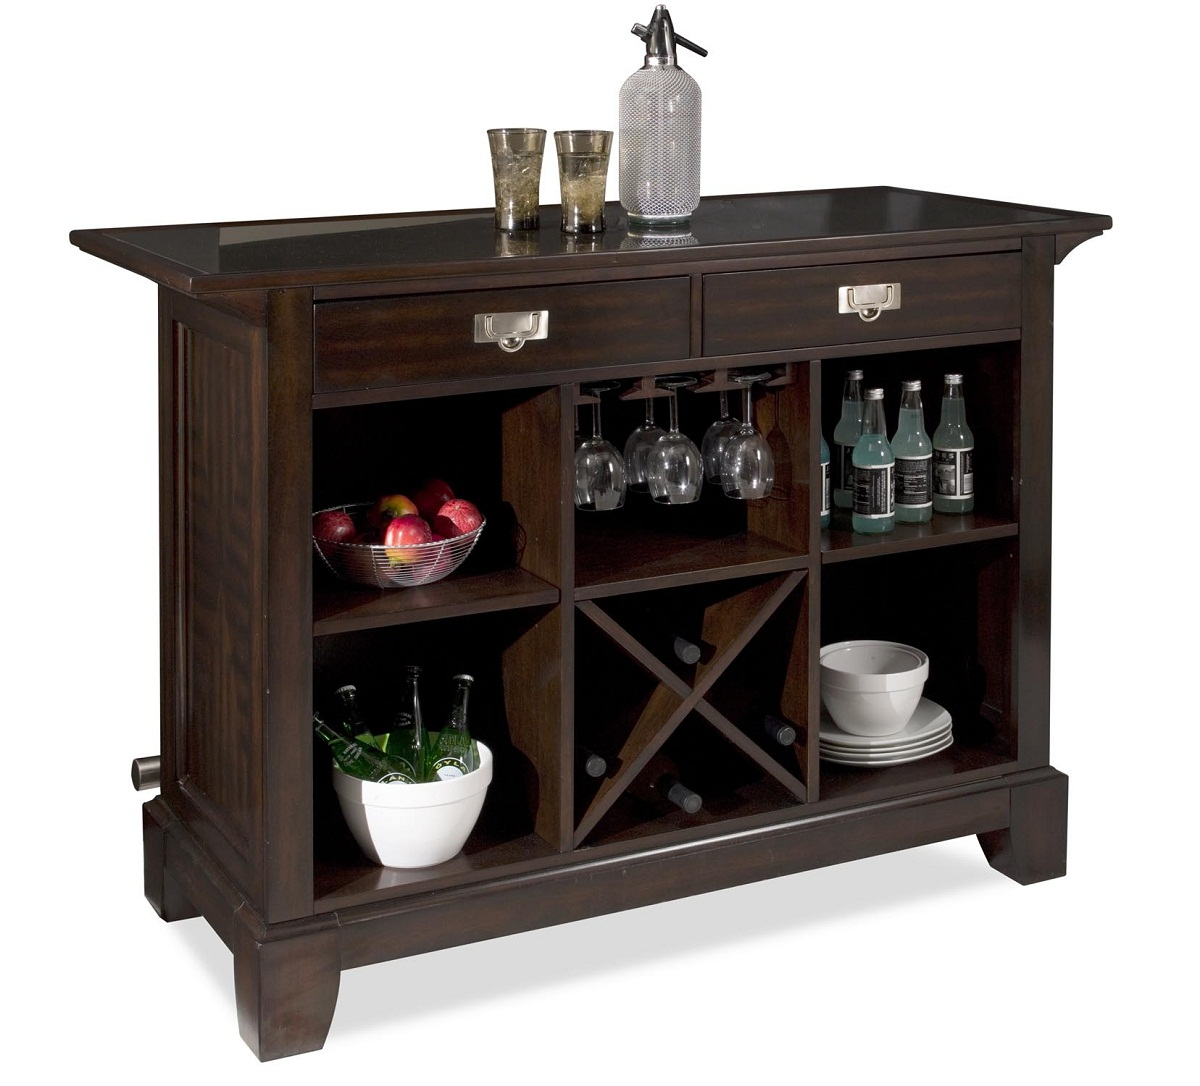 Quality Home Styles 5902 99 Rio Vista Bar Espresso at